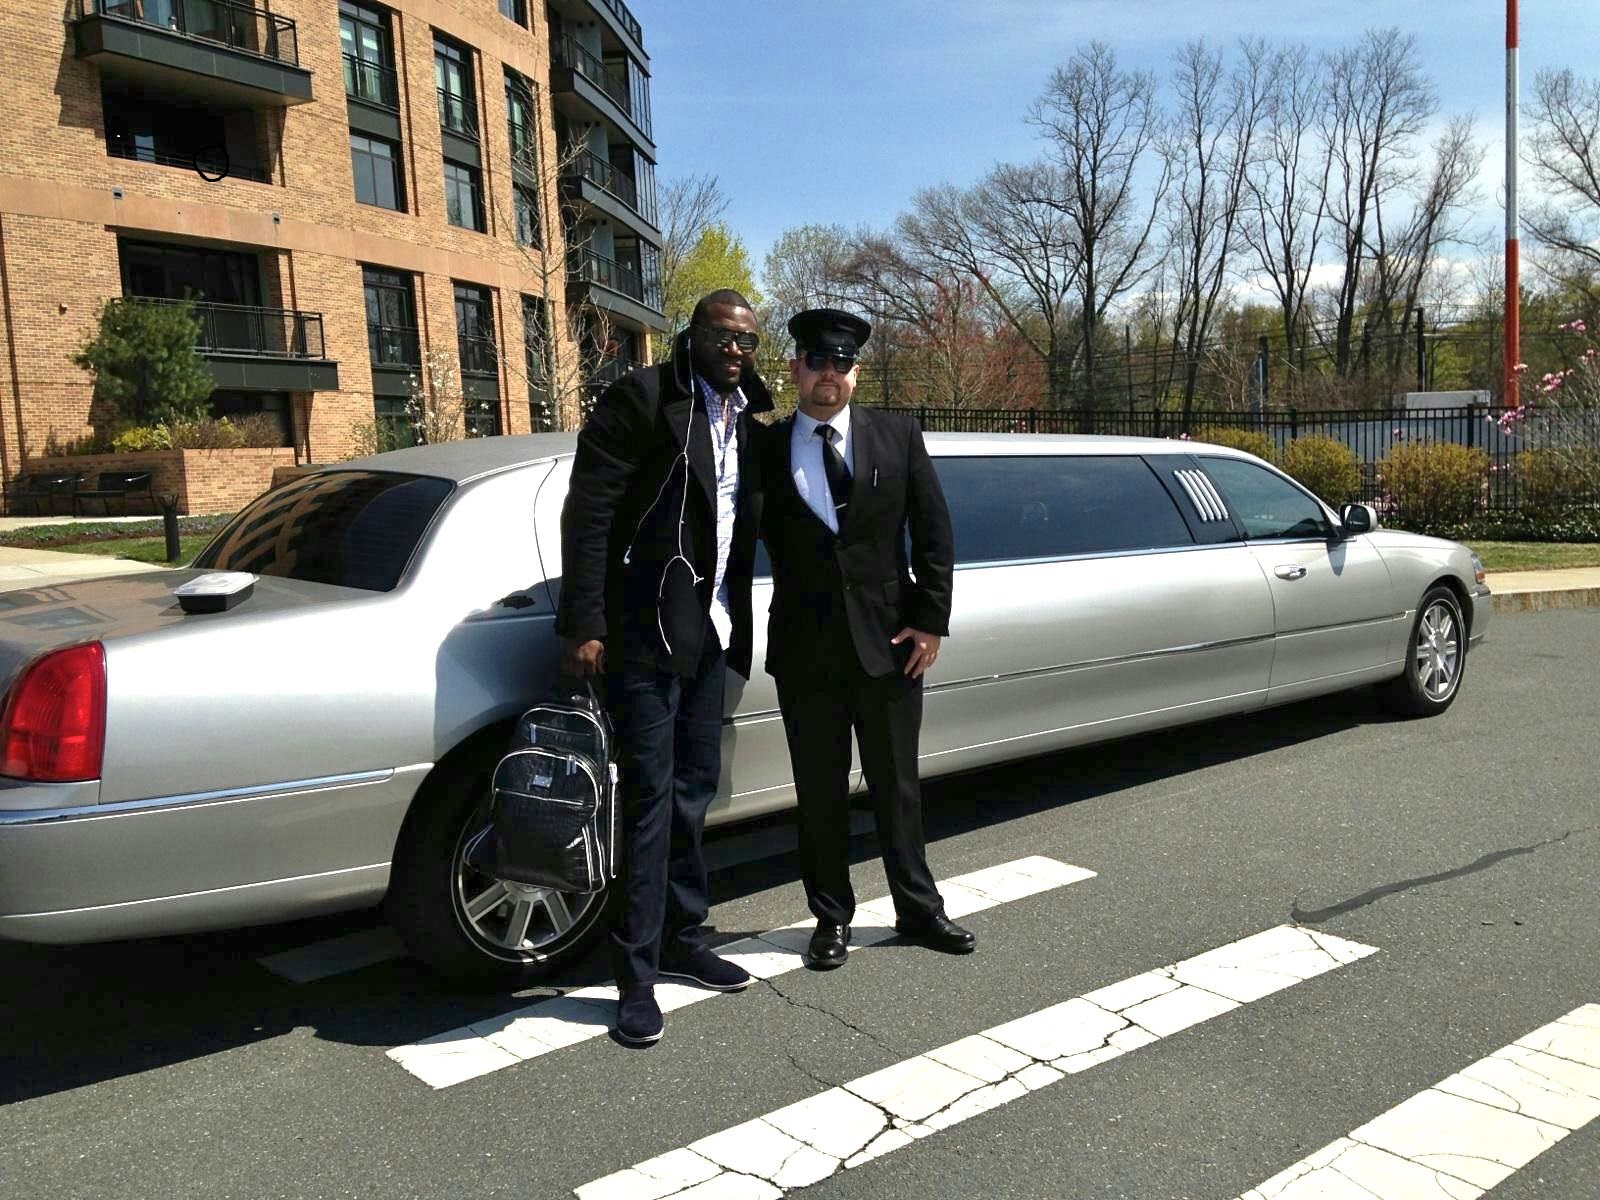 Limos for Rent Hollis NH 03049